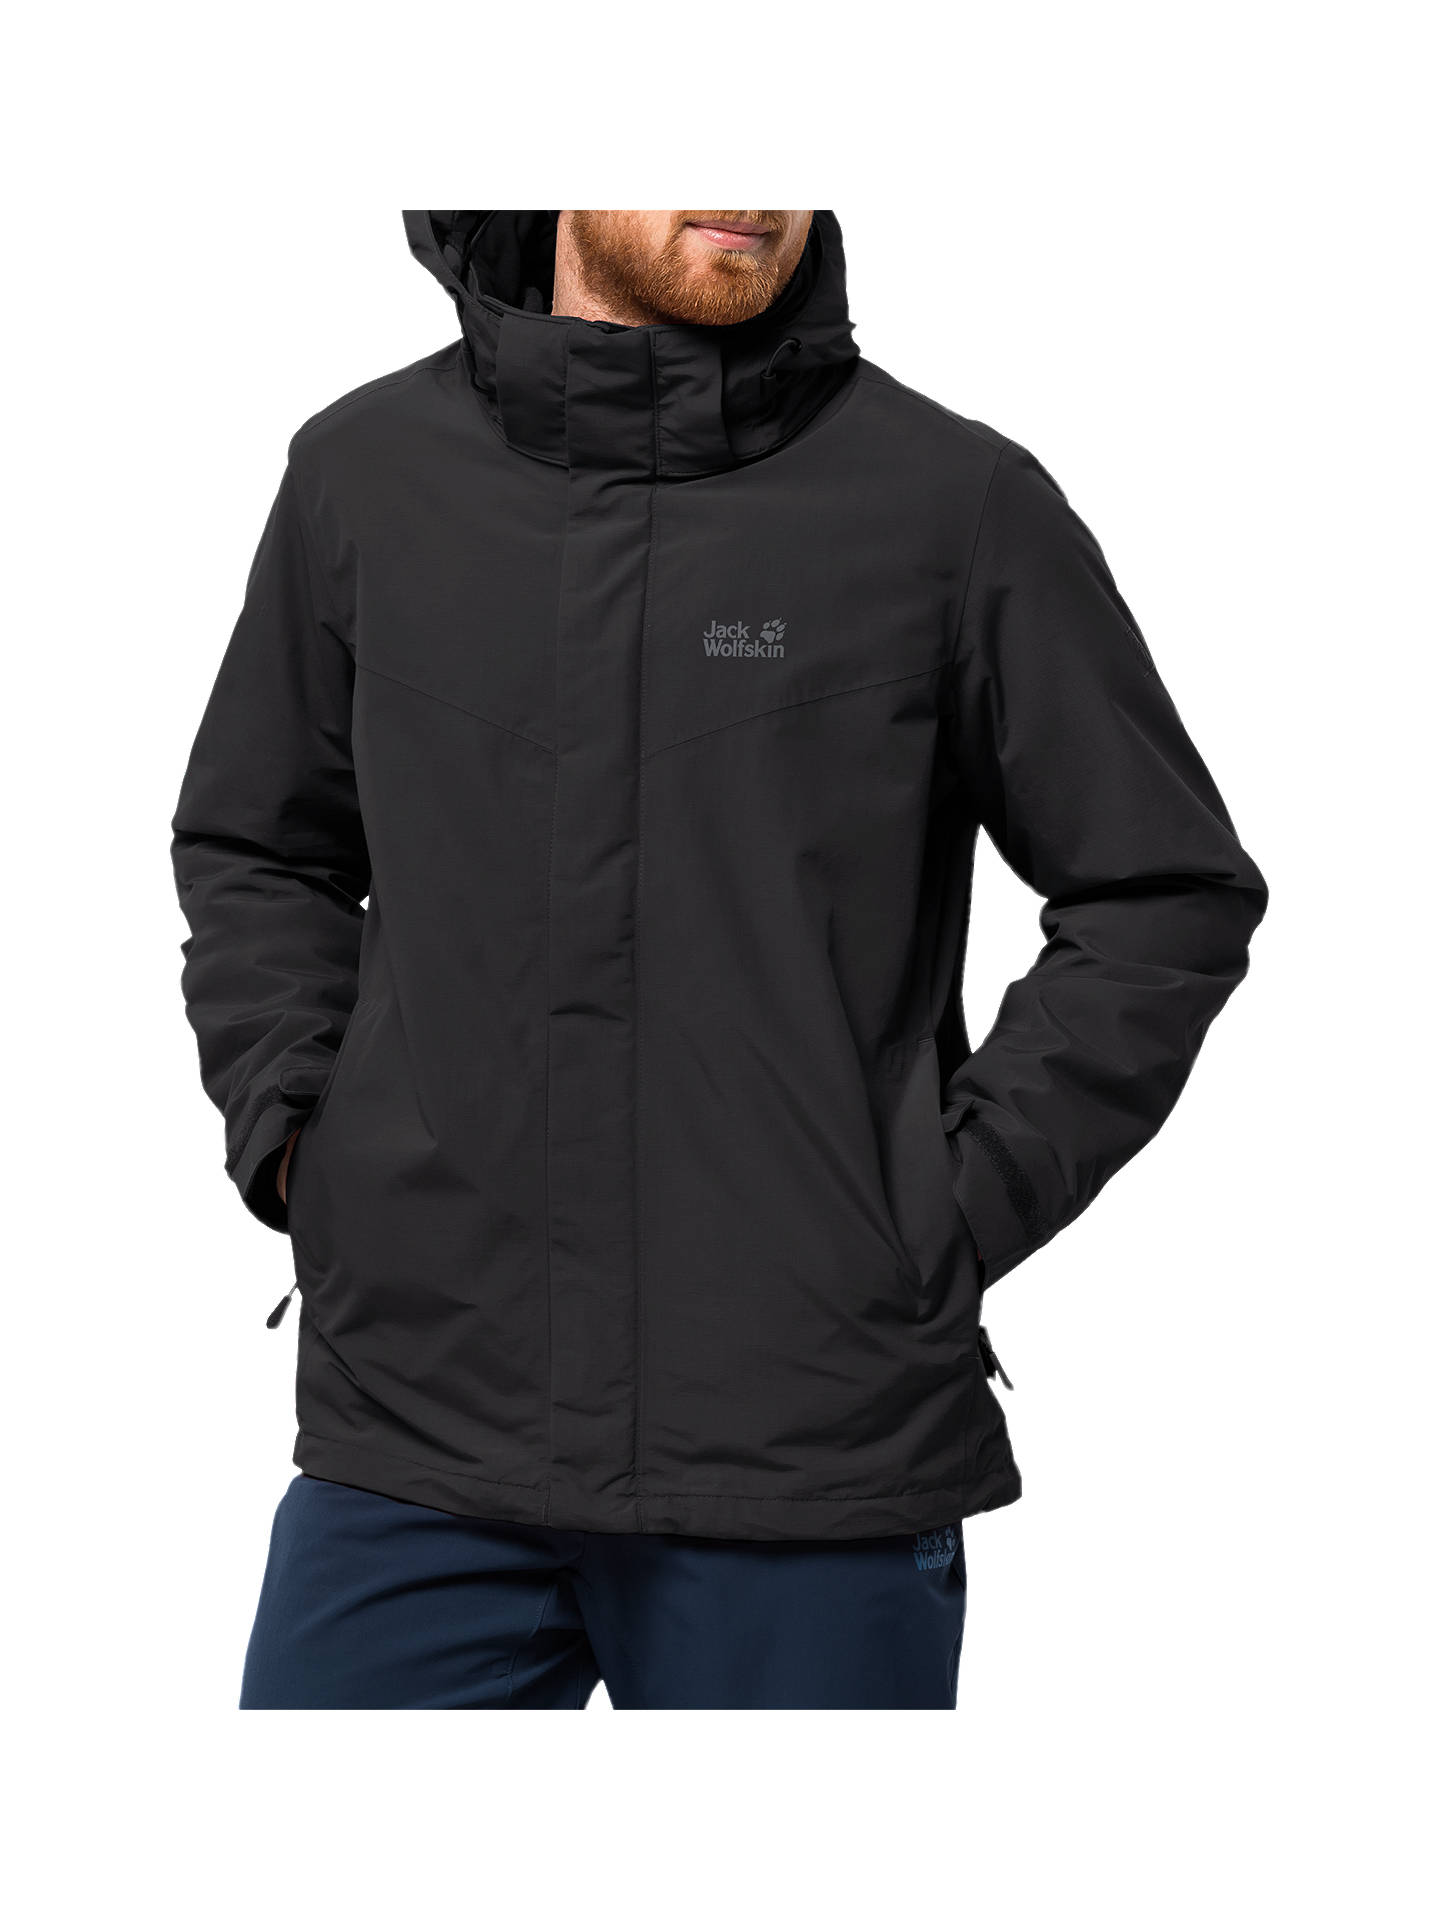 brand new 55164 f135f Jack Wolfskin Gotland 3-in-1 Men's Jacket, Black